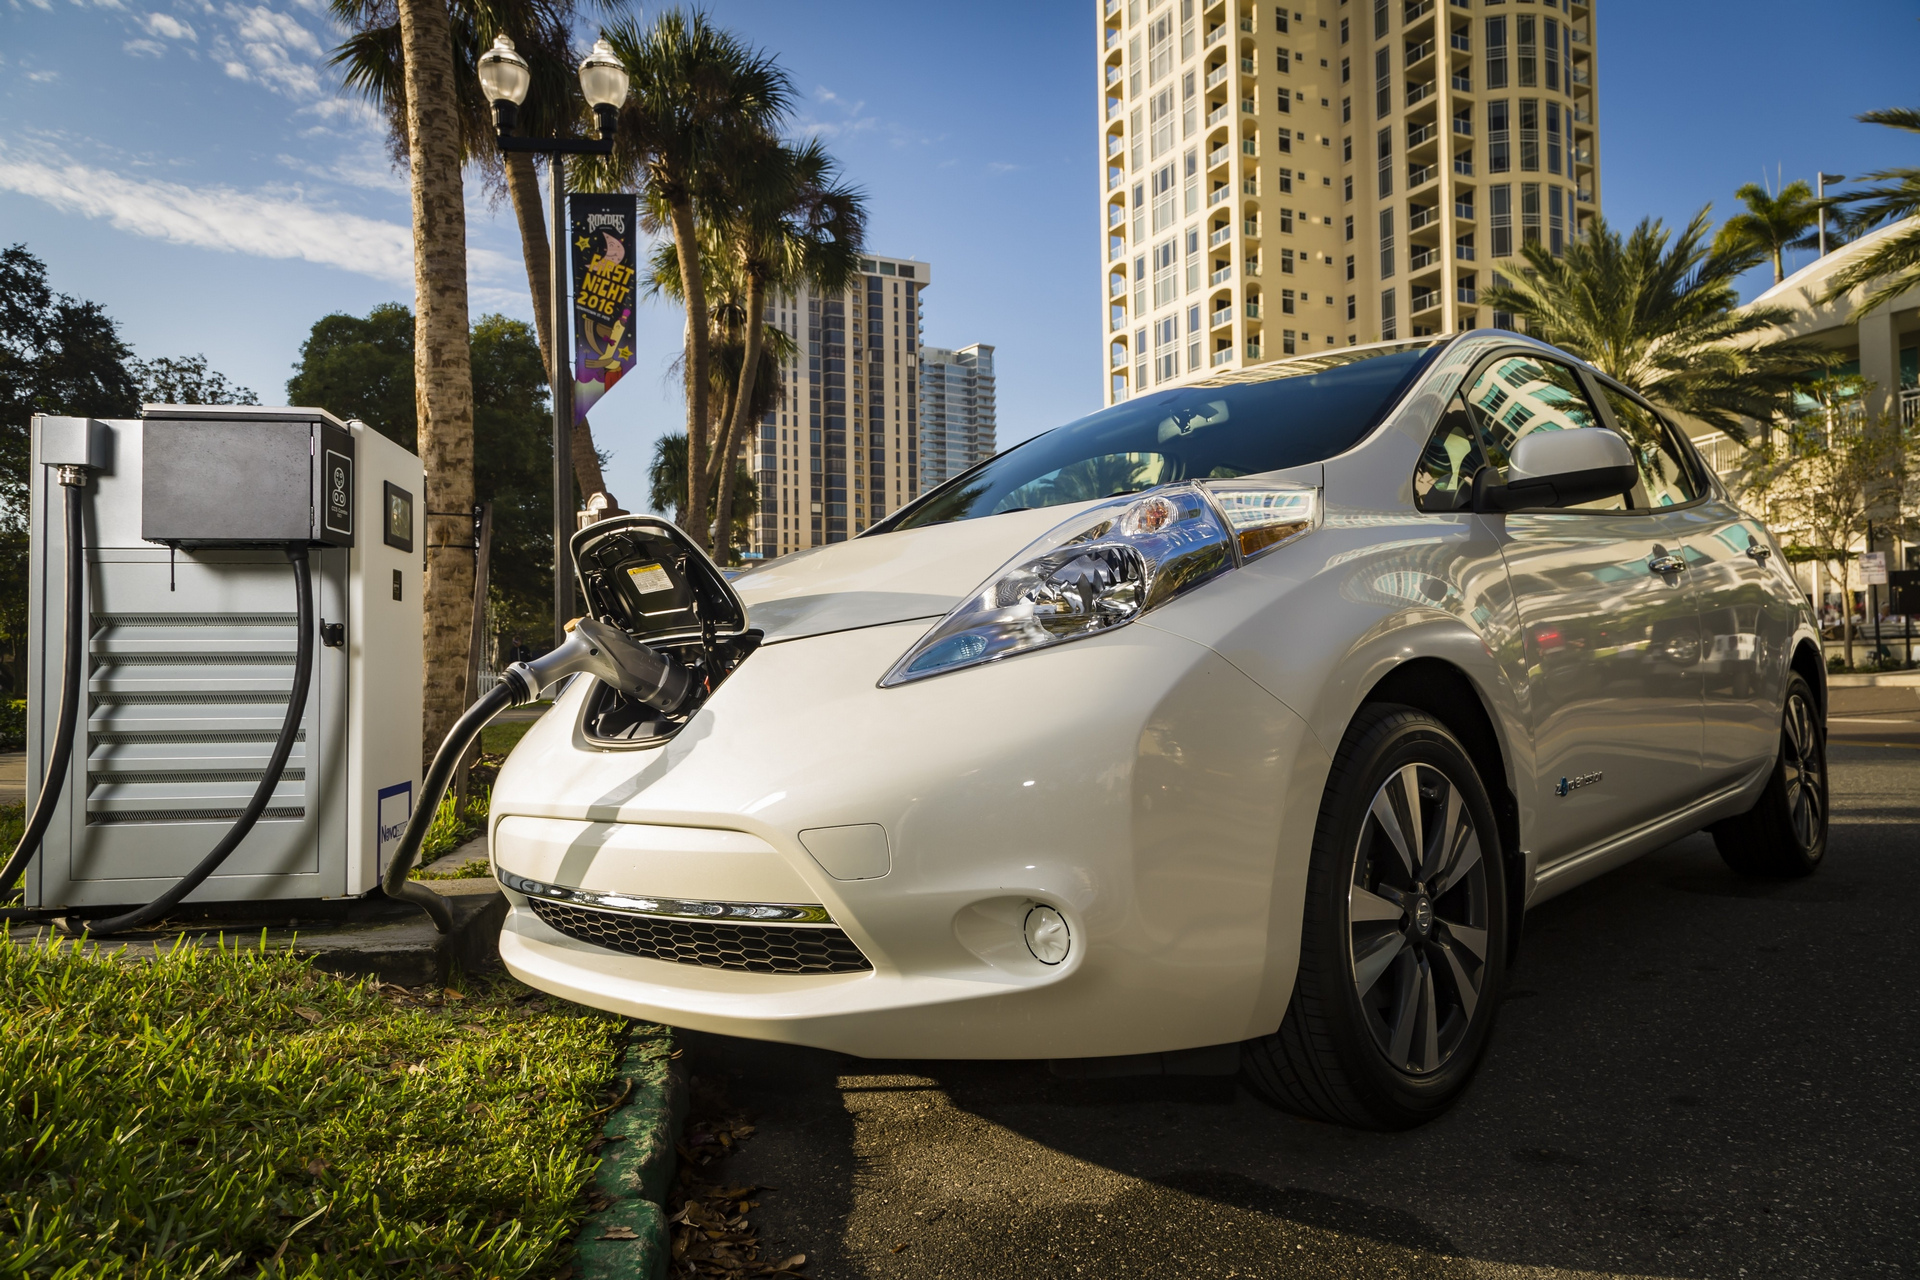 Nissan and BMW partner to deploy dual fast chargers across the U.S. to benefit electric vehicle drivers © Nissan Motor Co., Ltd.